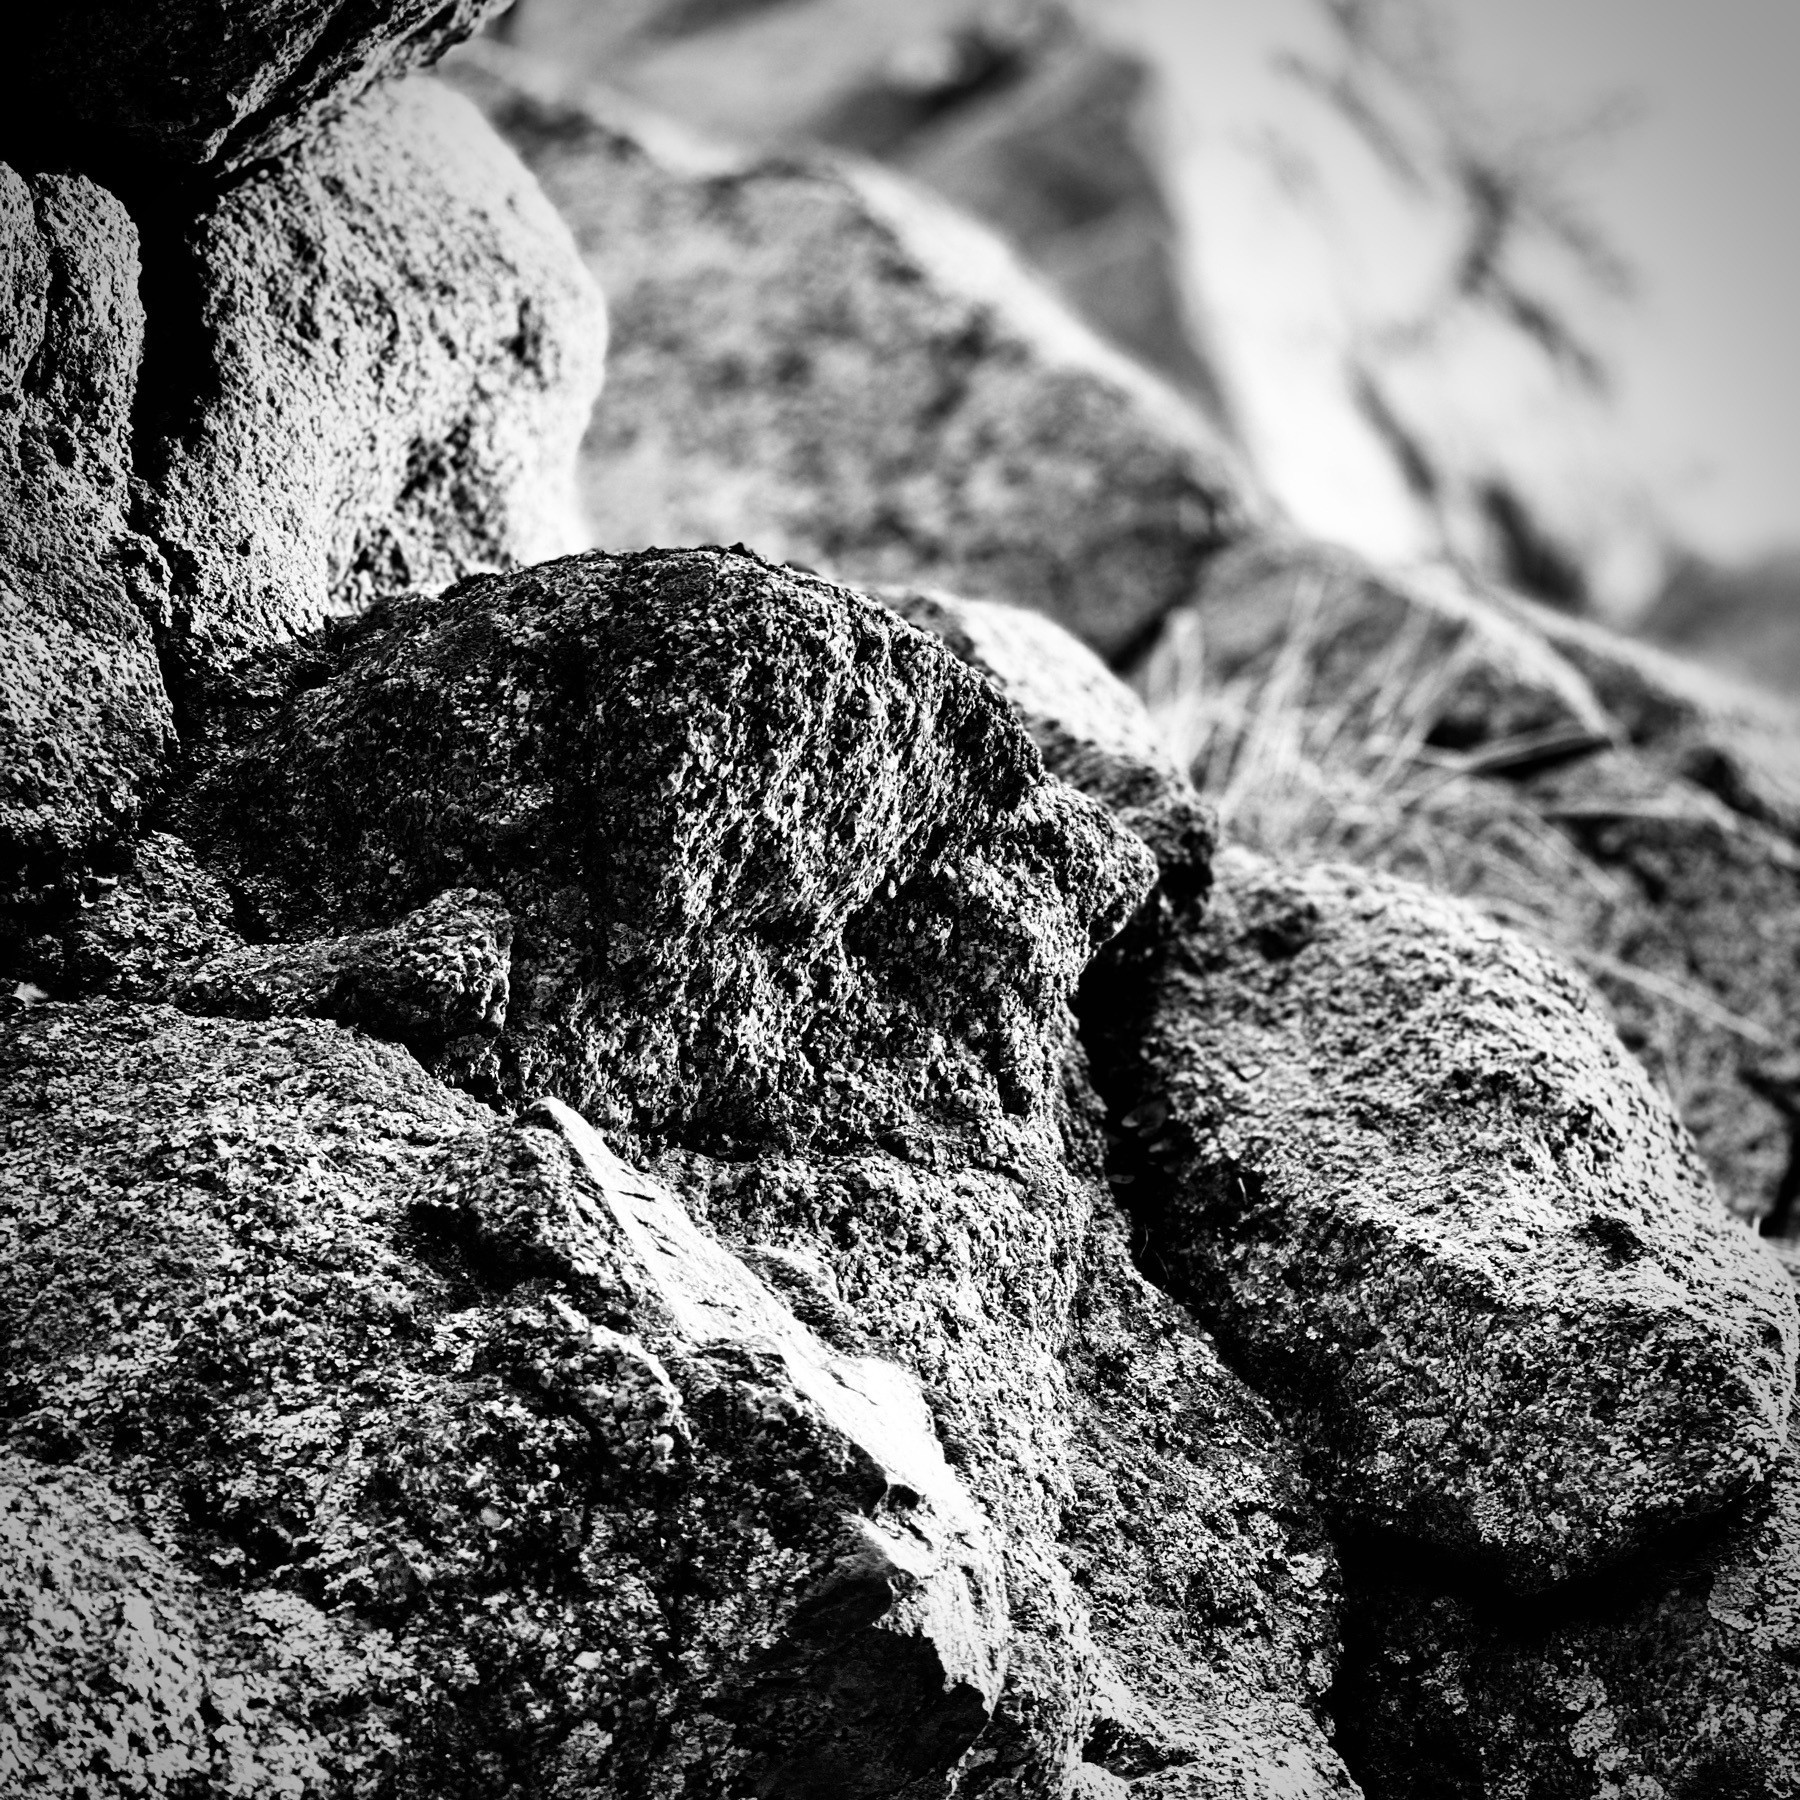 Black and White rocks.